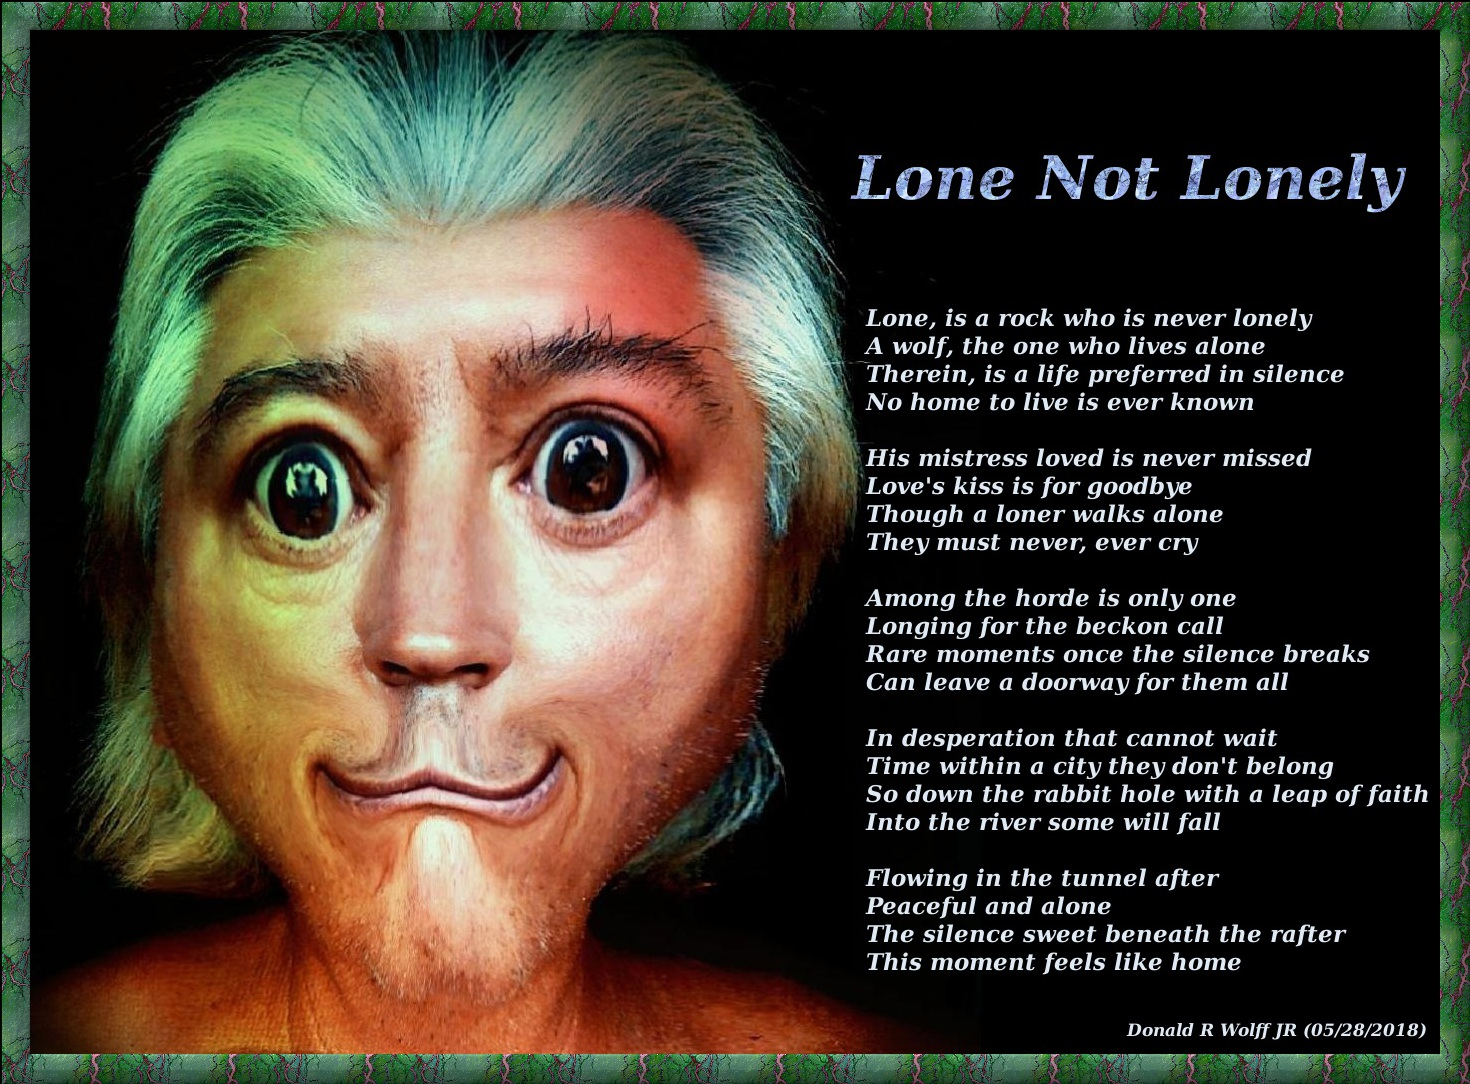 Lone Not Lonely